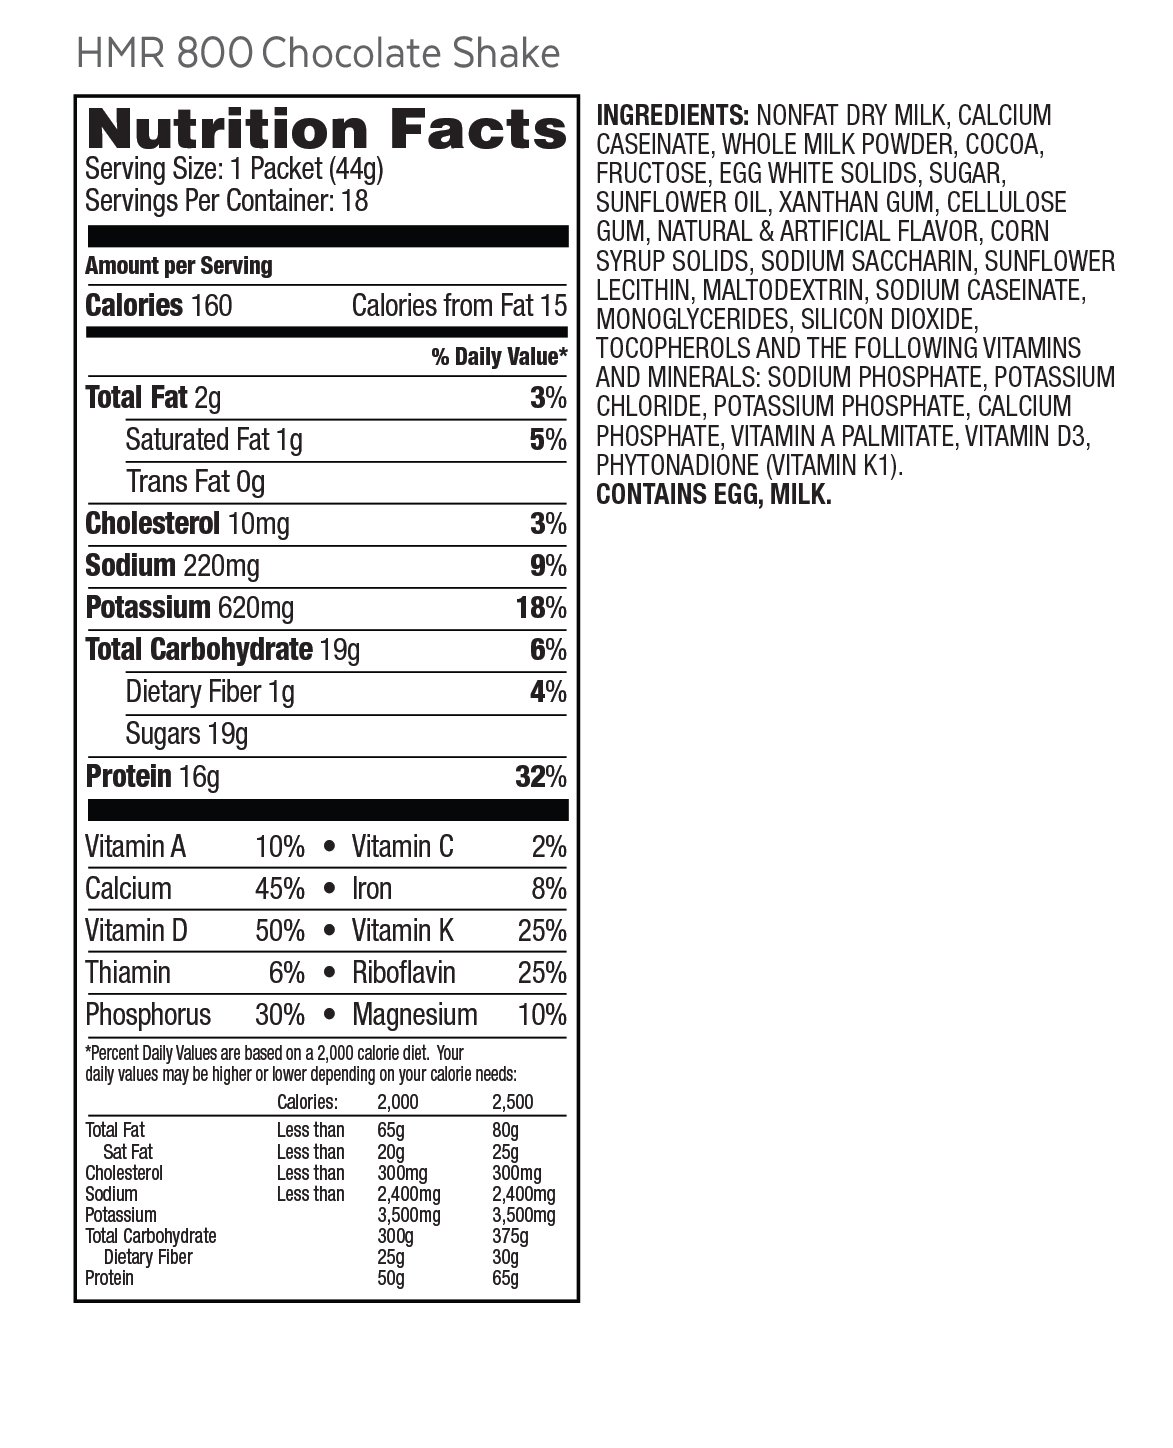 HMR 800 Chocolate Shake Triple Pack, 16g Protein, 3 Boxes of 18 Servings by HMR